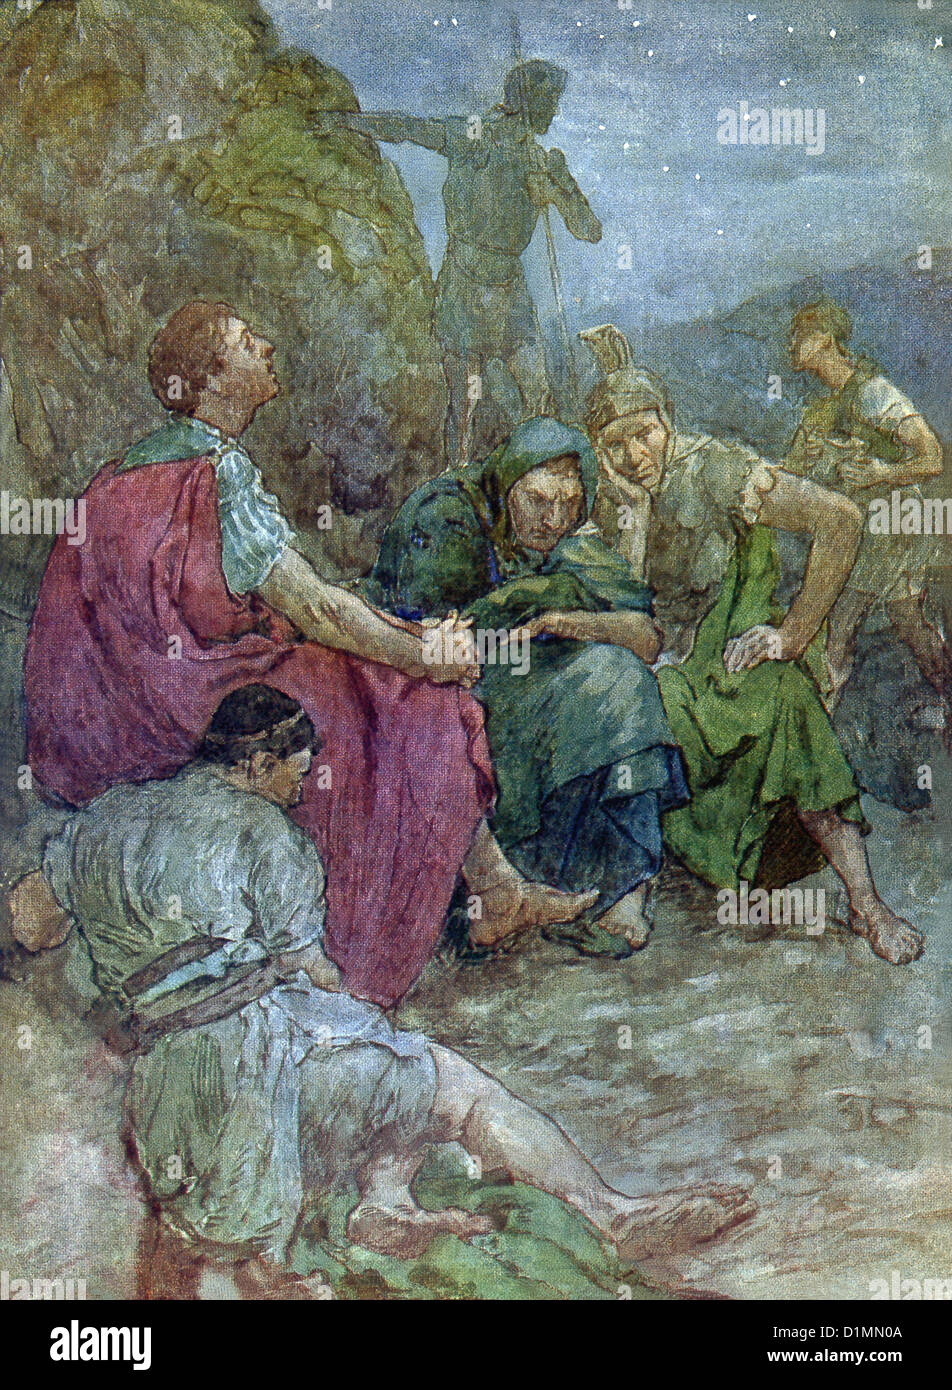 Brutus, who had been a main conspirator against Julius Caesar, sits after the Battle of Philippi before he commits - Stock Image